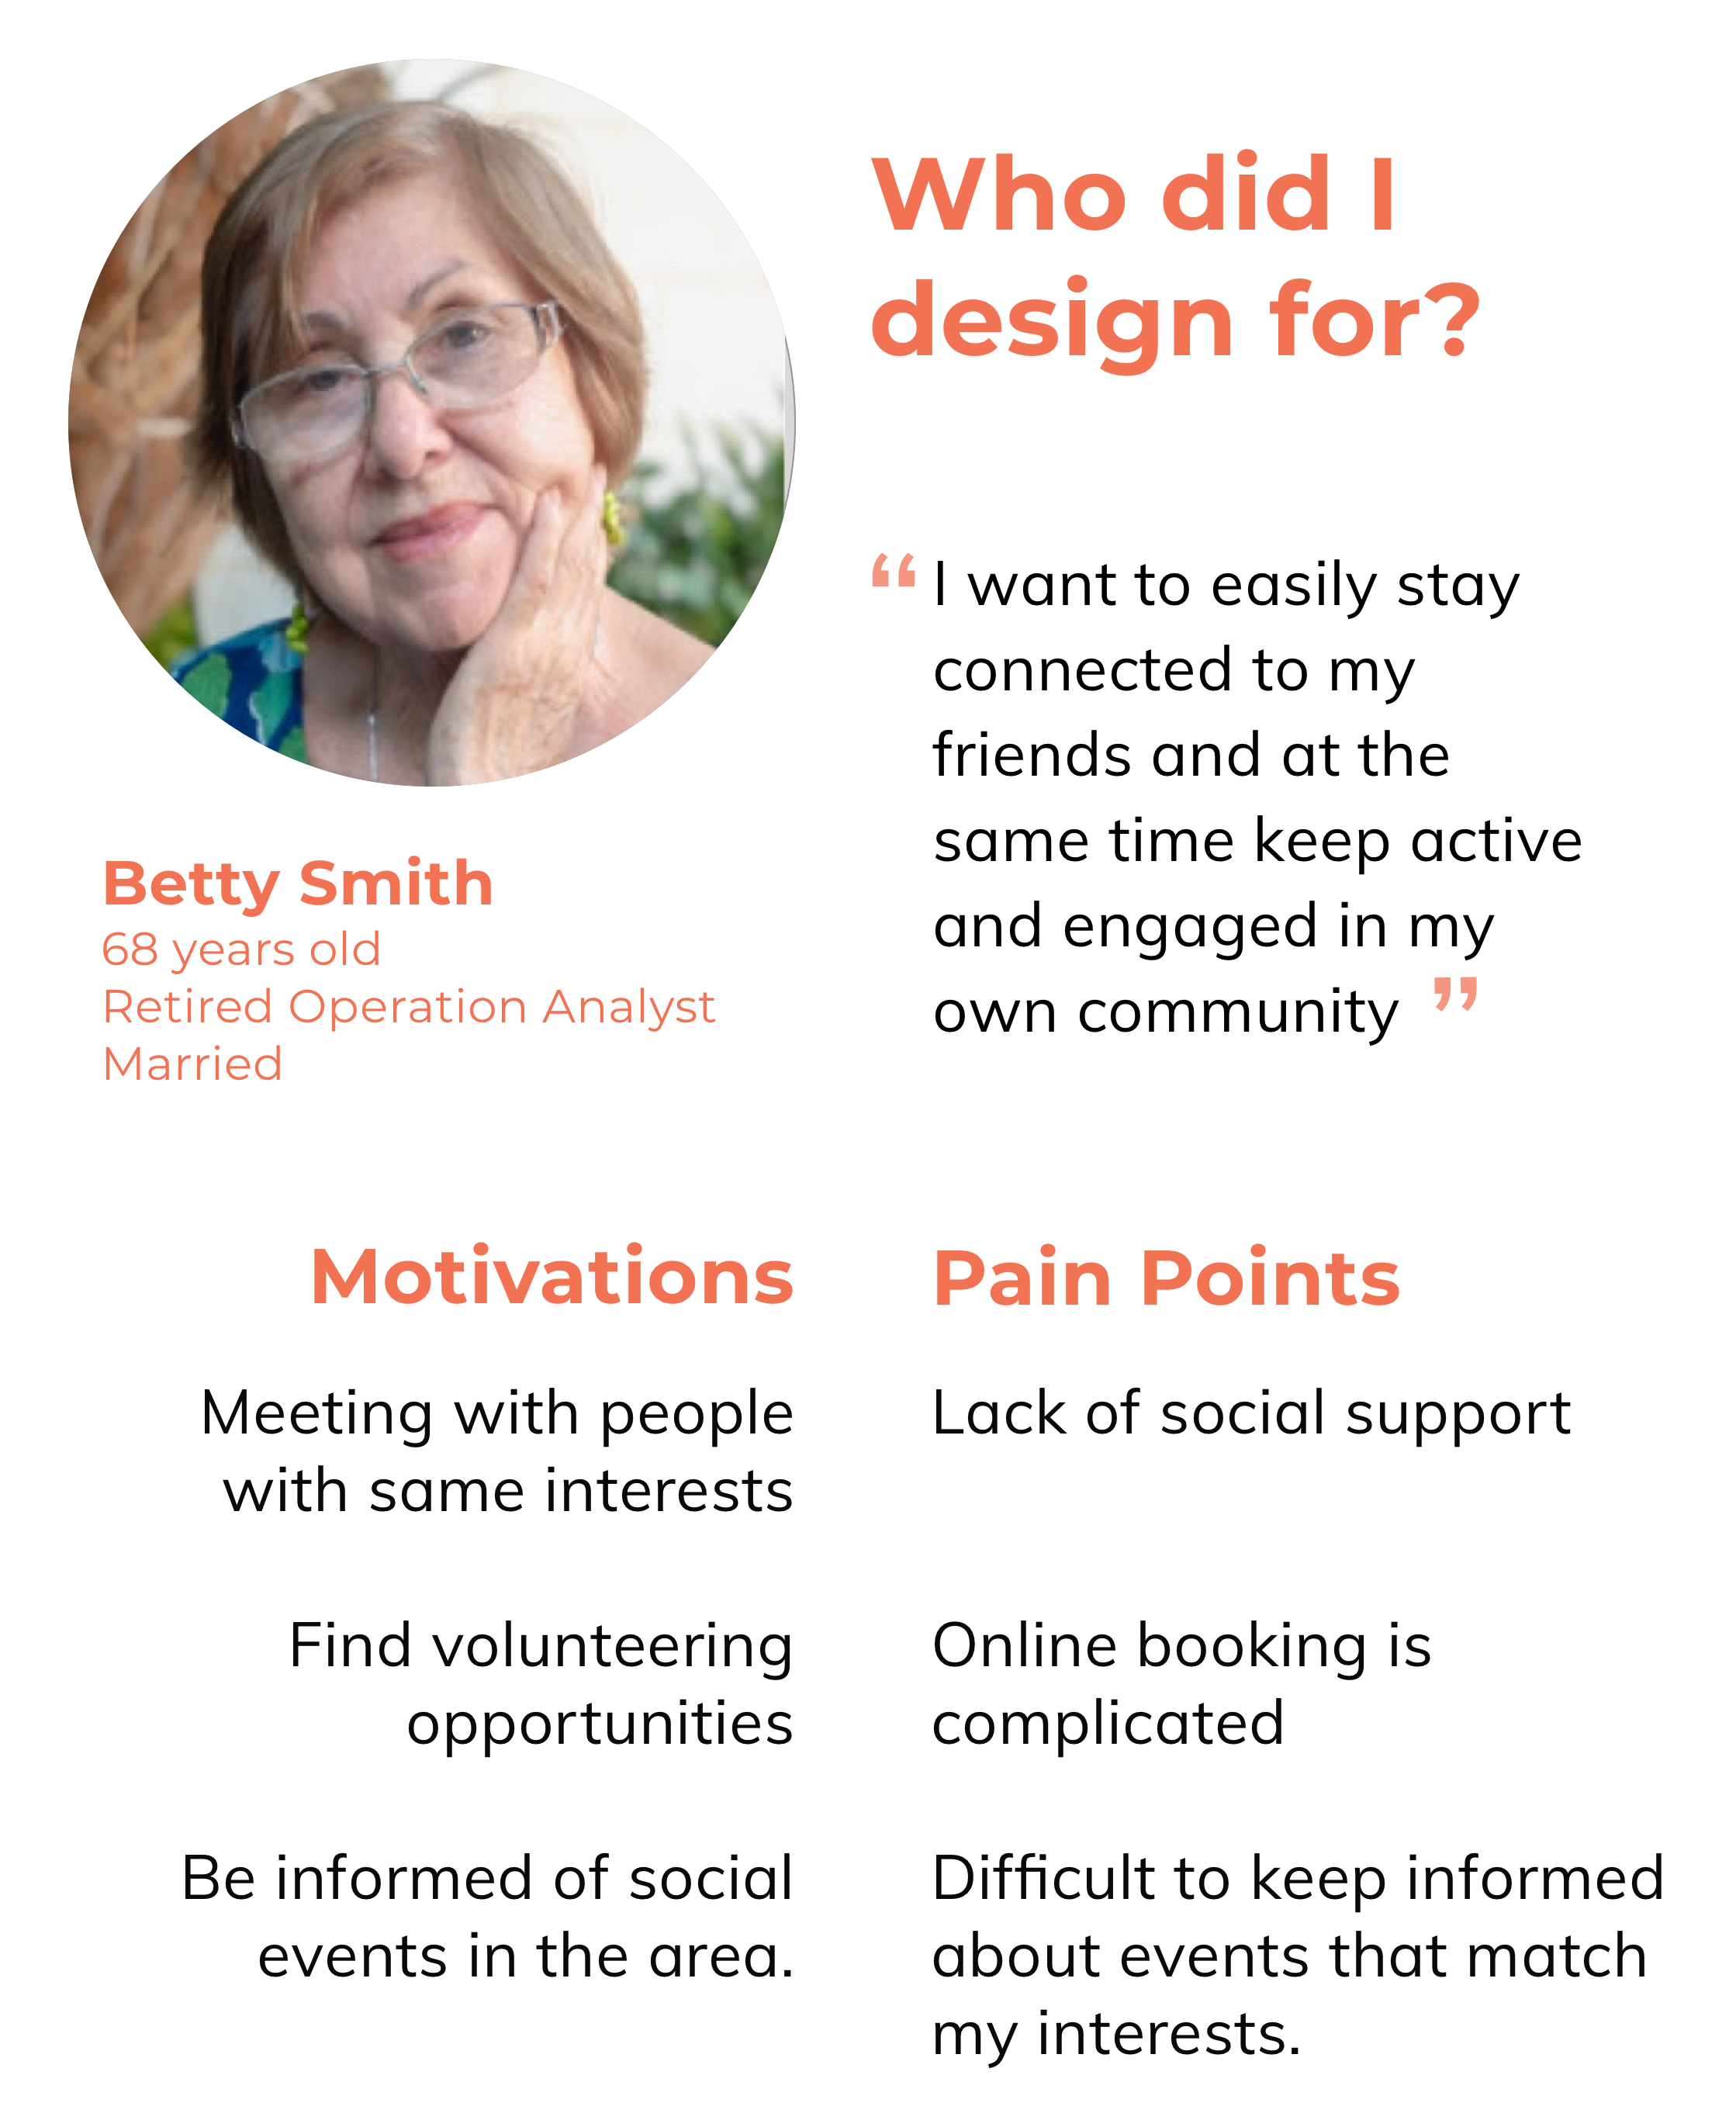 UX Case Study: Empowering seniors to stay connected and active